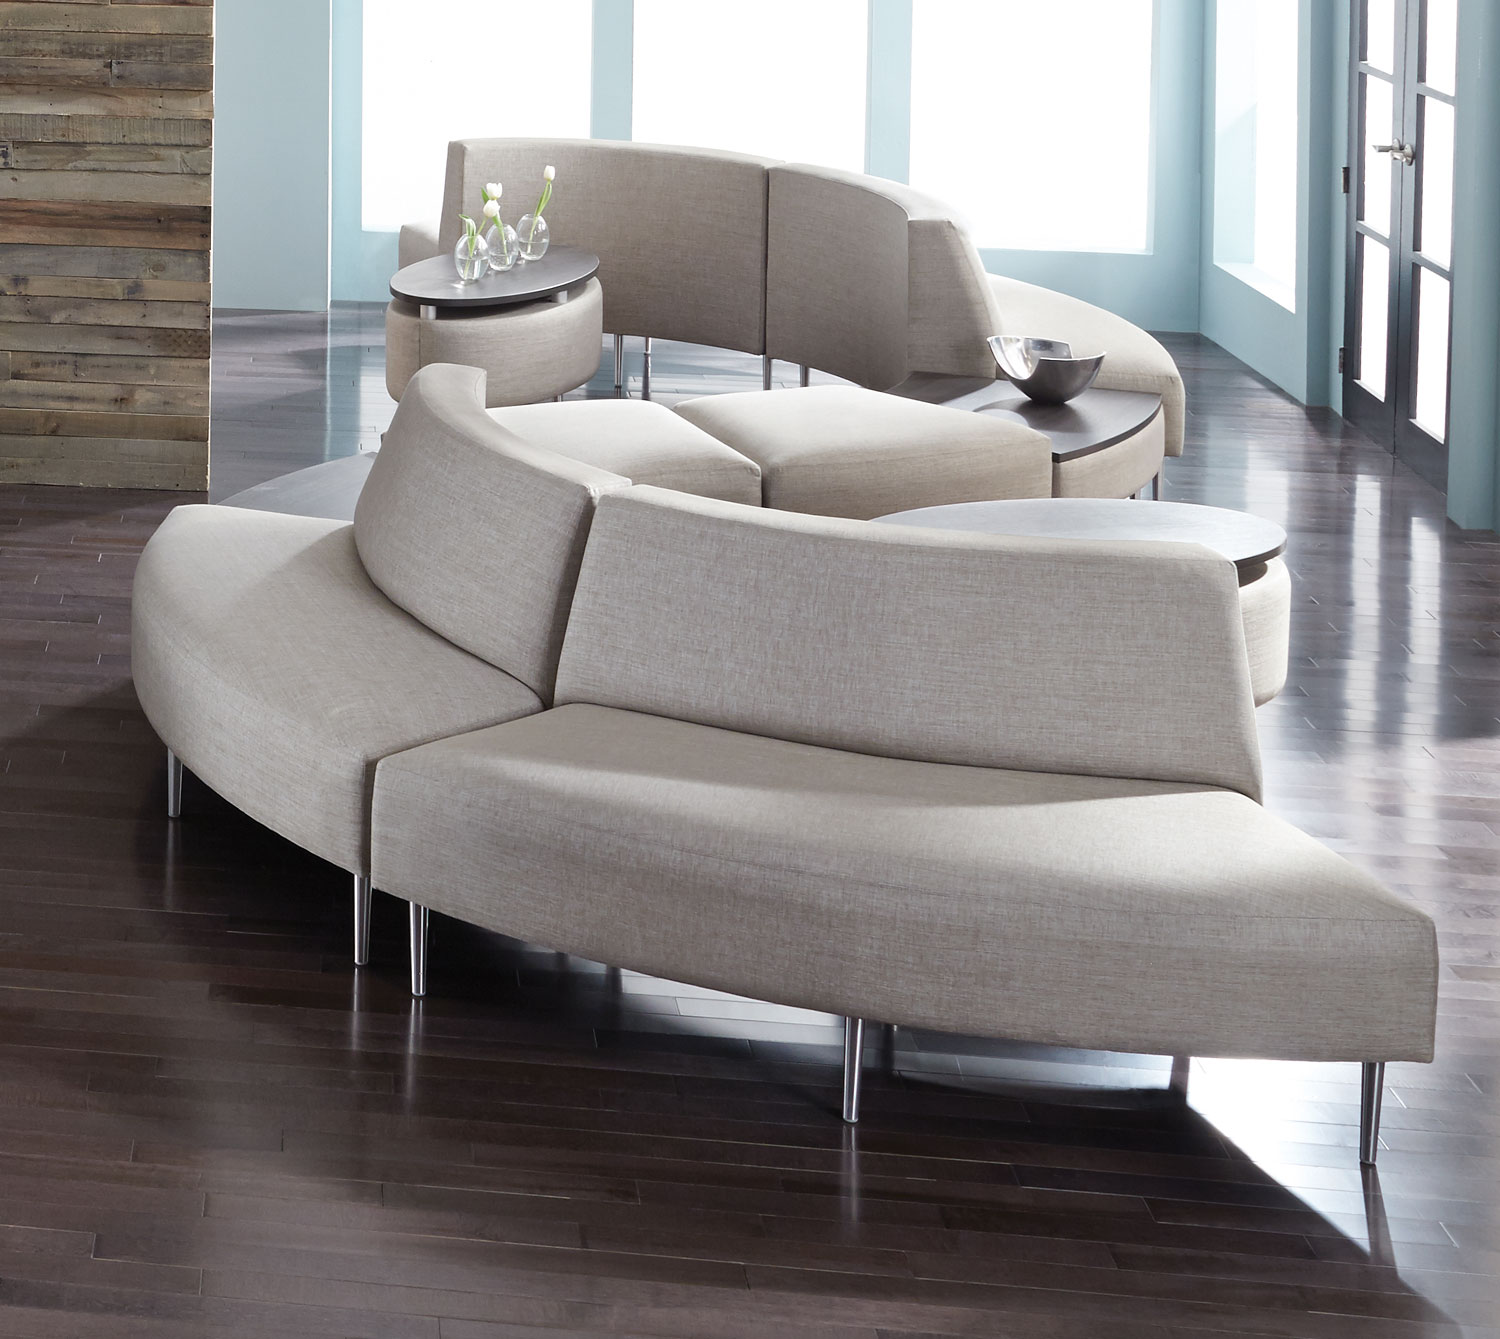 Eve Lounge And Reception Seating From HPFi   High Point Furniture Industries